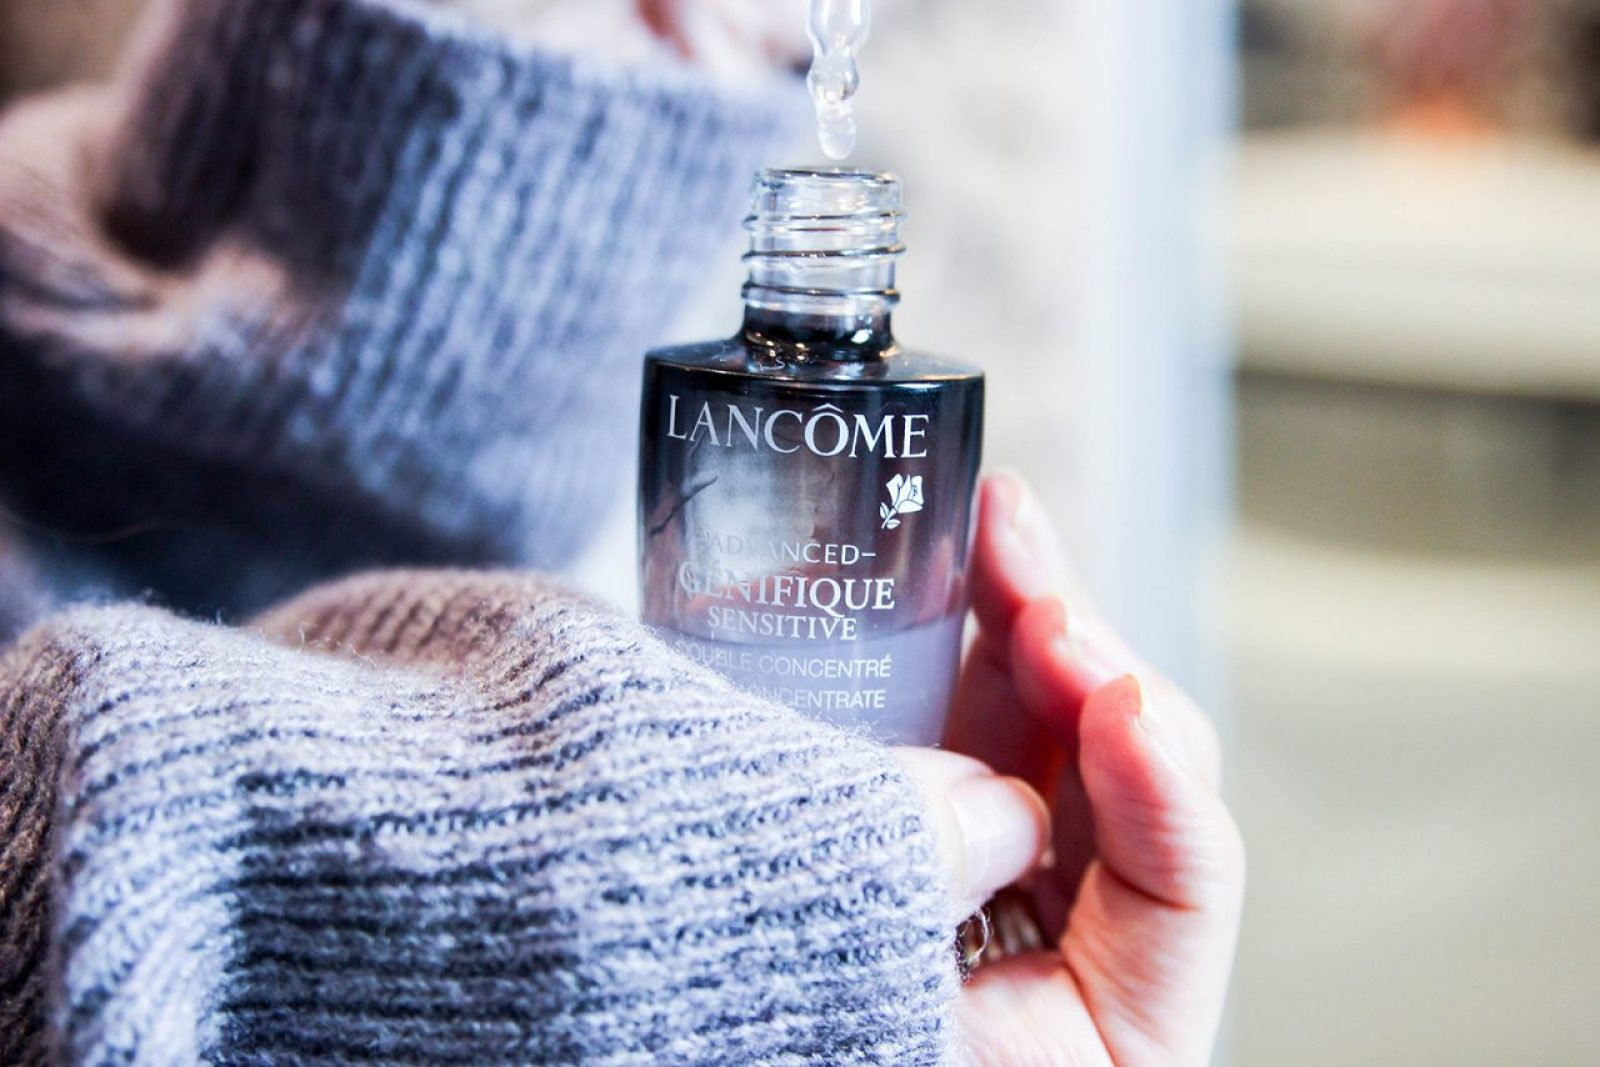 lancome-Serum-Genifique Sensitive-5